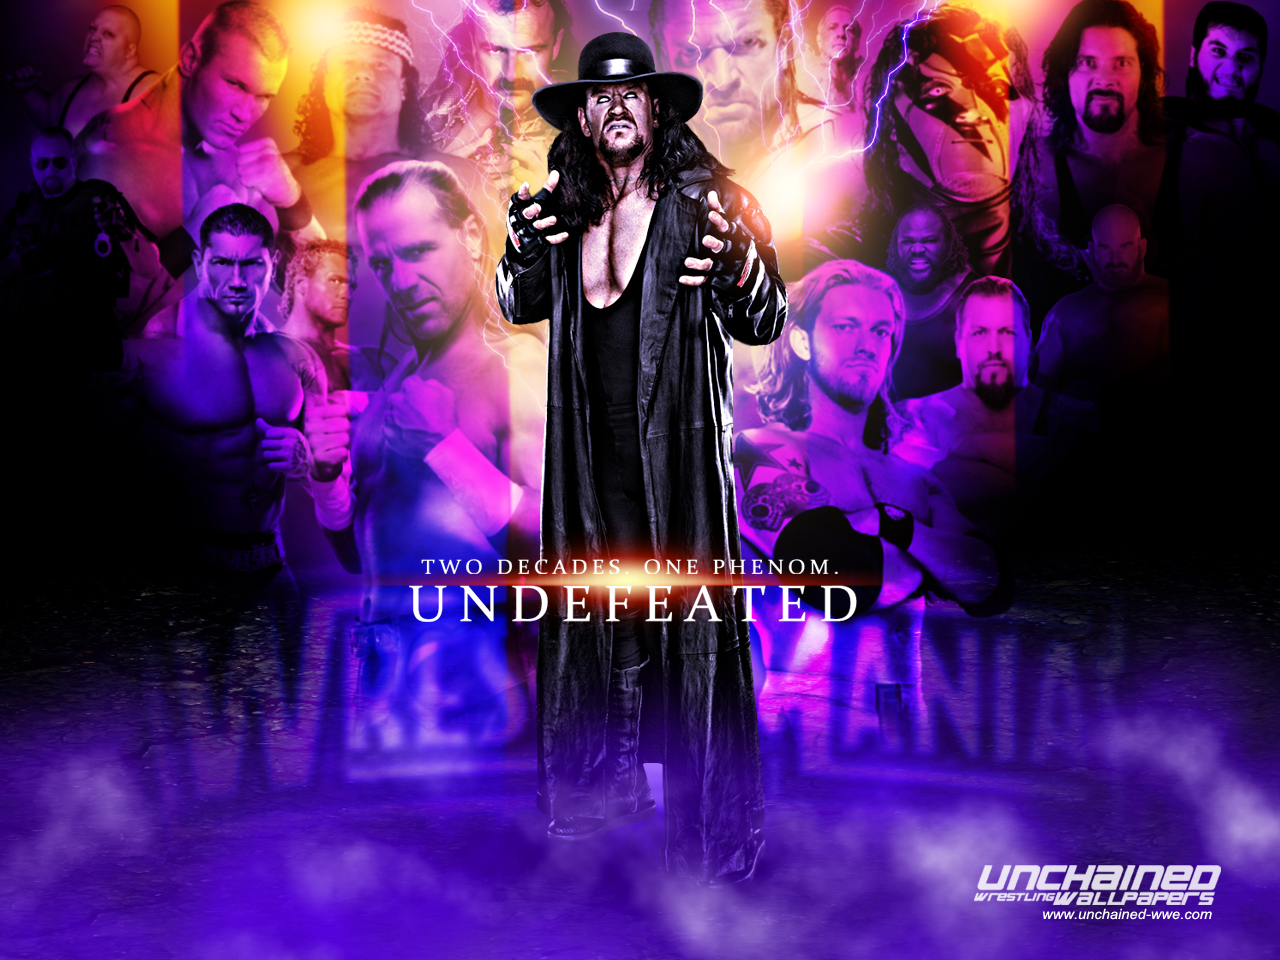 Undertaker-Undefeated